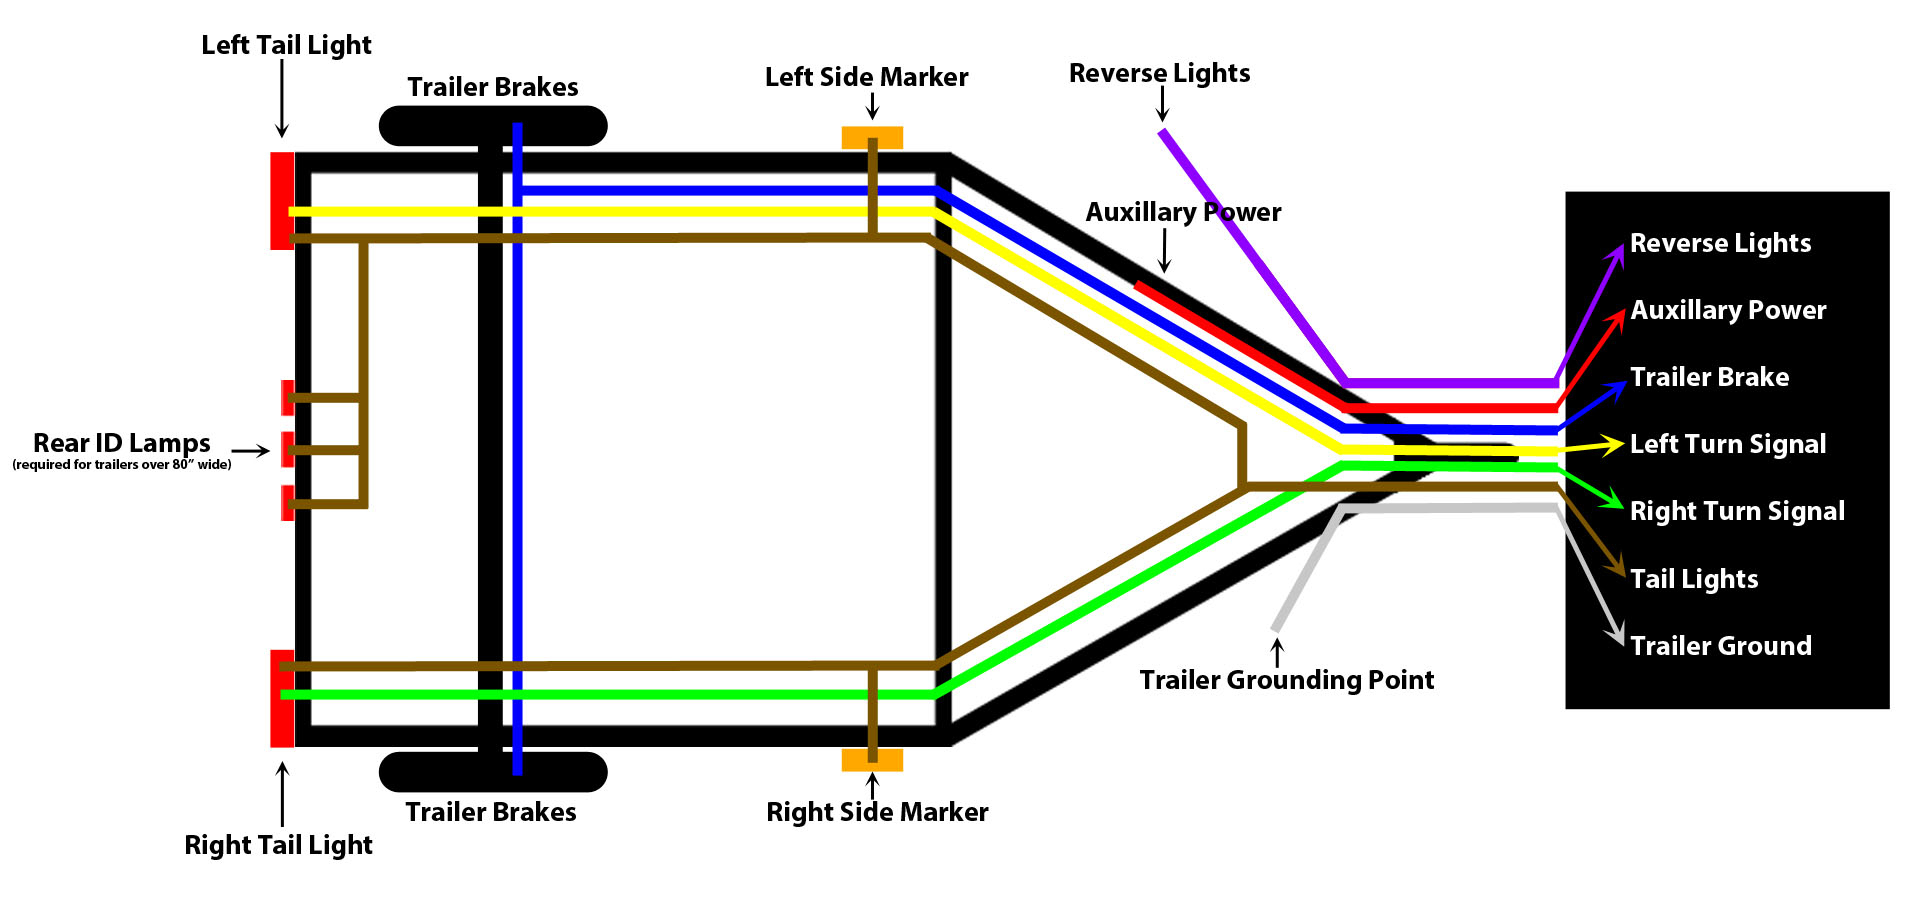 Lark Trailer Wiring Diagram | Wiring Diagram - Lark Trailer Wiring Diagram